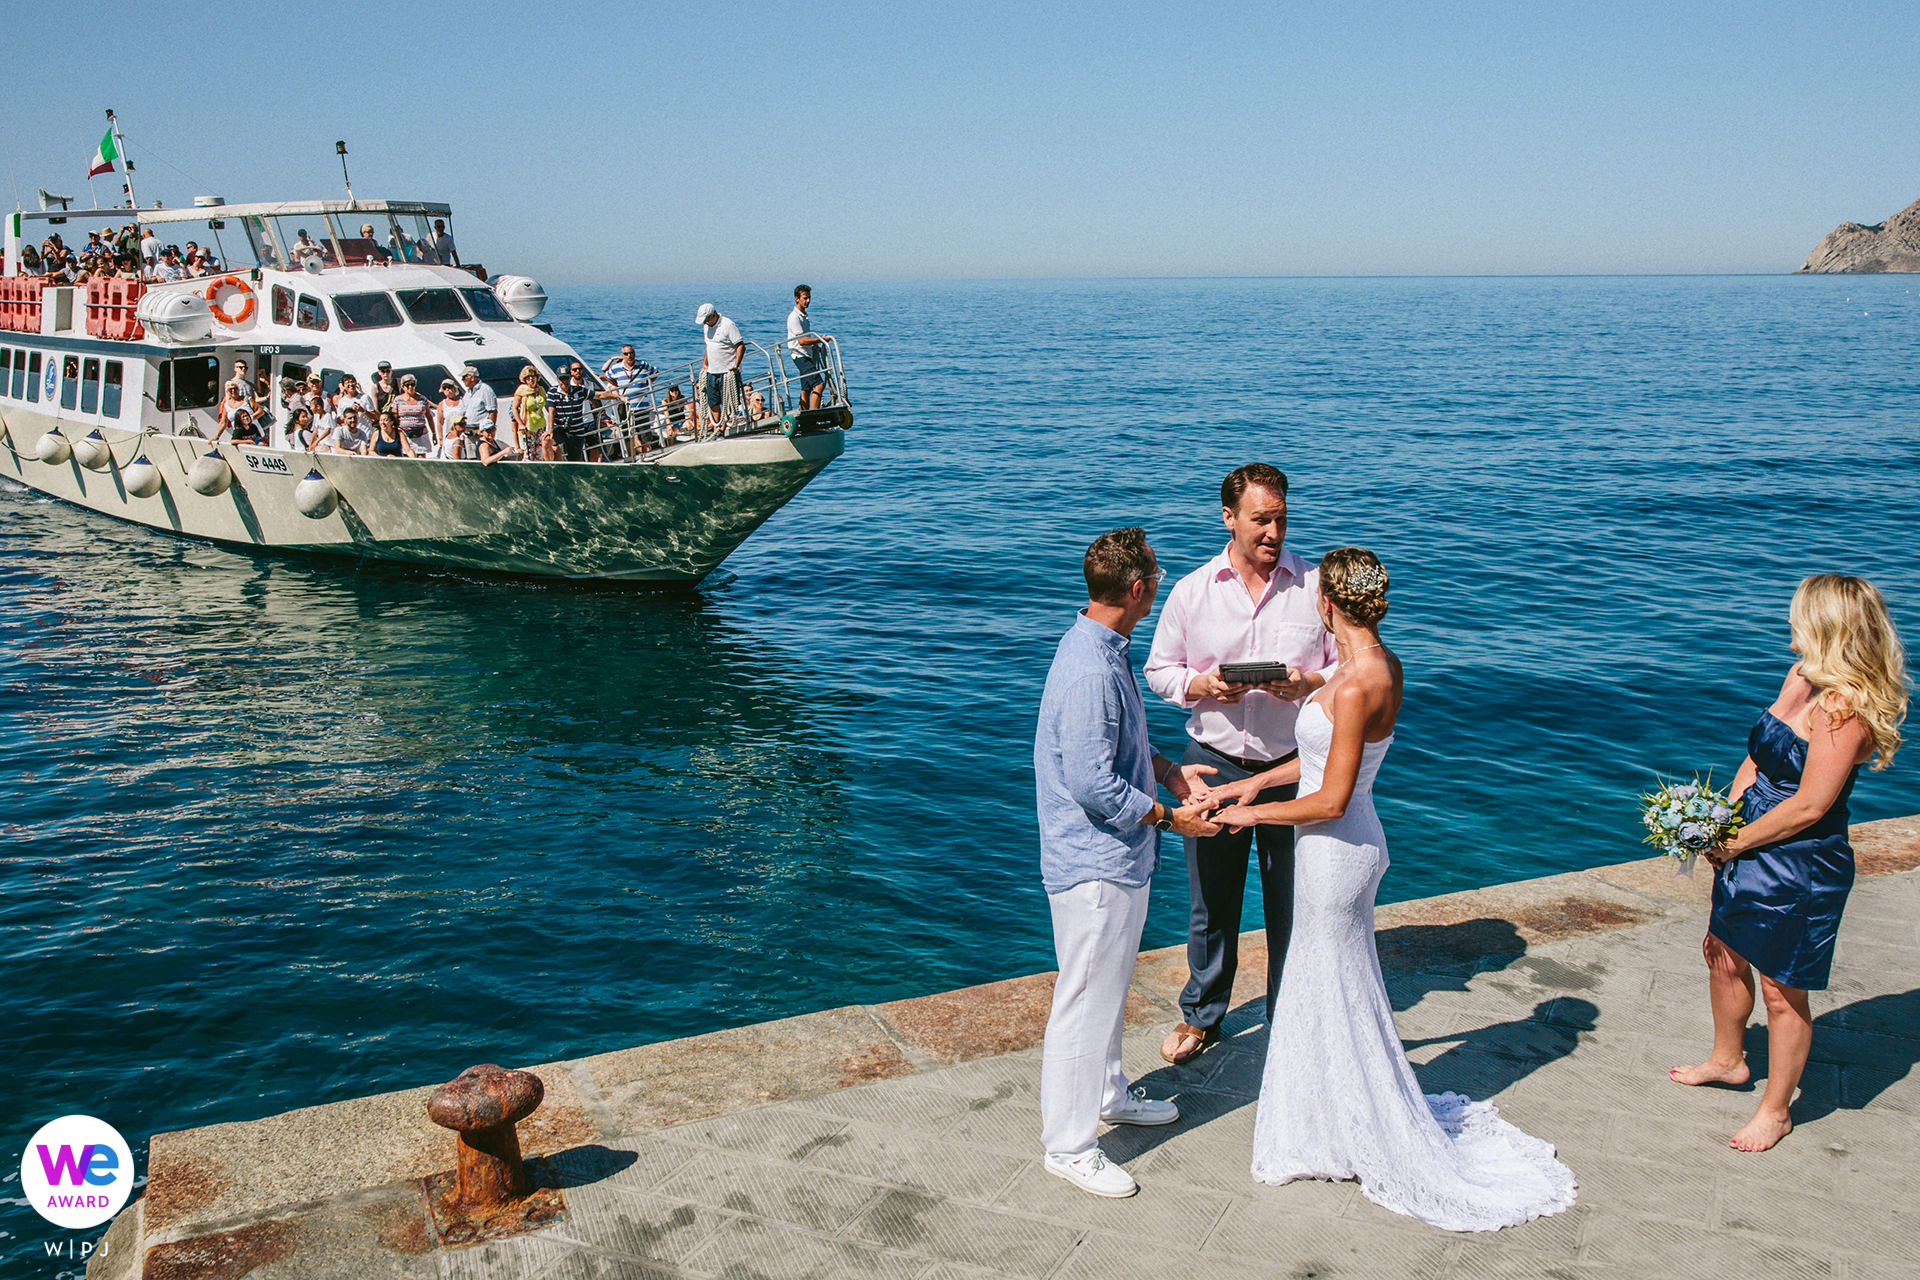 Vernazza, Cinque Terre Italy Elopement Photo from Beach Ceremony | The Cinque Terre ferry making its unplanned and unforeseen entrance in the wedding ceremony. The ferry crowd cheered for the newlyweds.